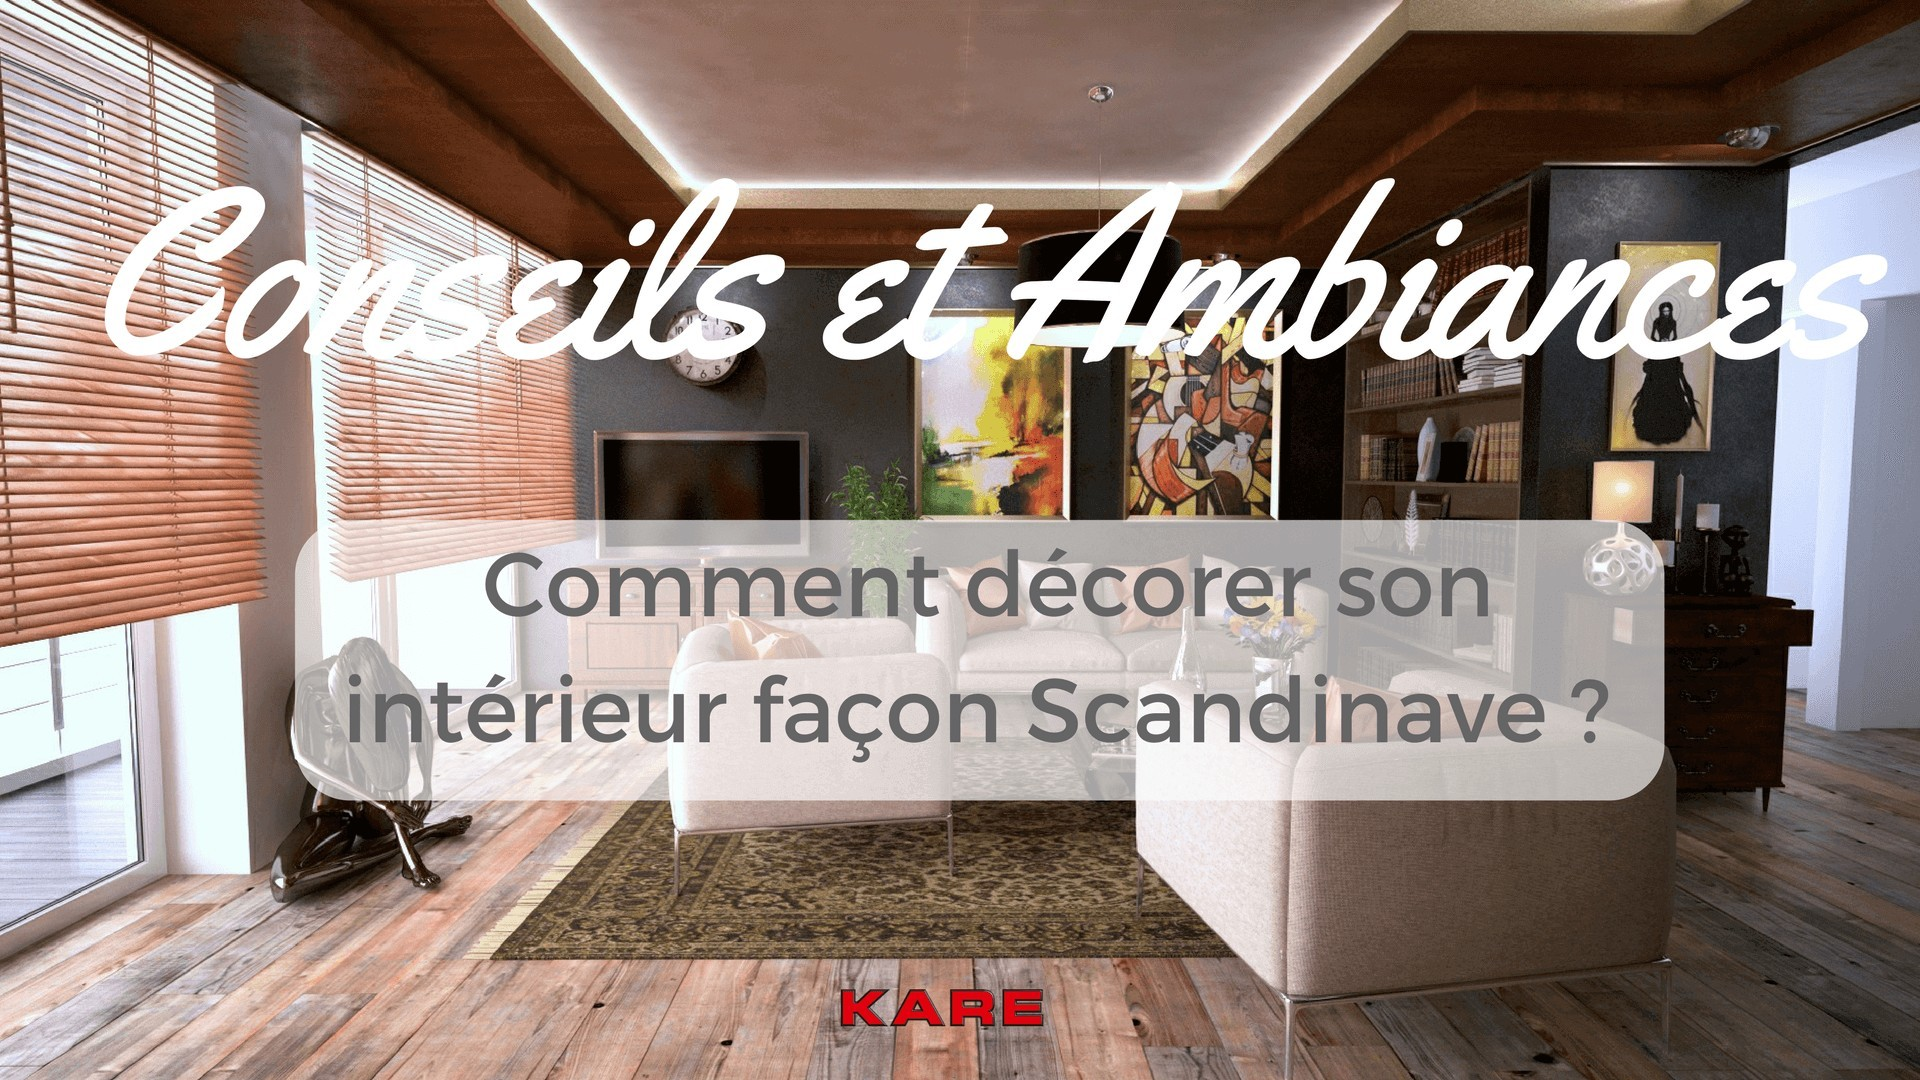 comment d corer son int rieur fa on scandinave kare click. Black Bedroom Furniture Sets. Home Design Ideas